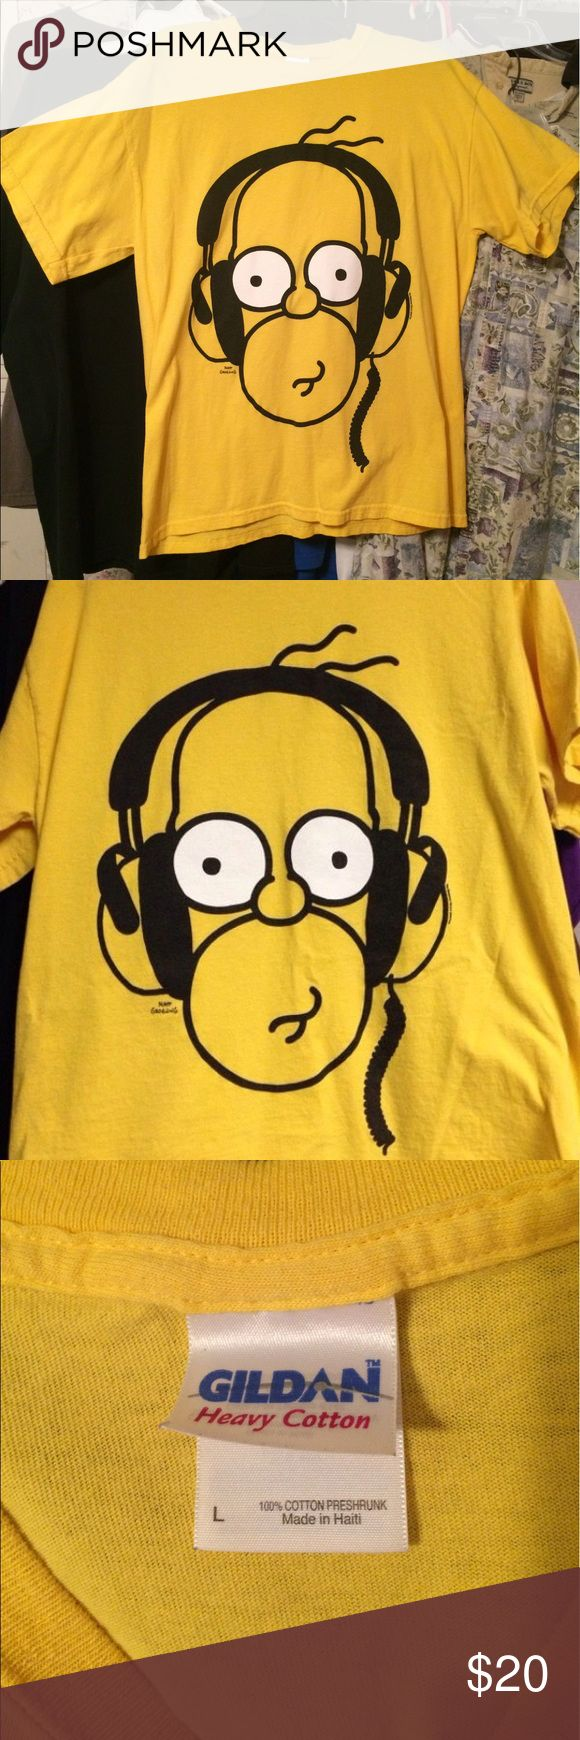 🎊new list!💛 Homer Simpson Tee💛 Homer Simpson tee.  Yellow.  Homer wearing headphones Image.  Size large.  A fan of the Simpsons?  Feel free to inquire regarding other Simpsons memorabilia available for sale. 😉 Gildan Shirts Tees - Short Sleeve